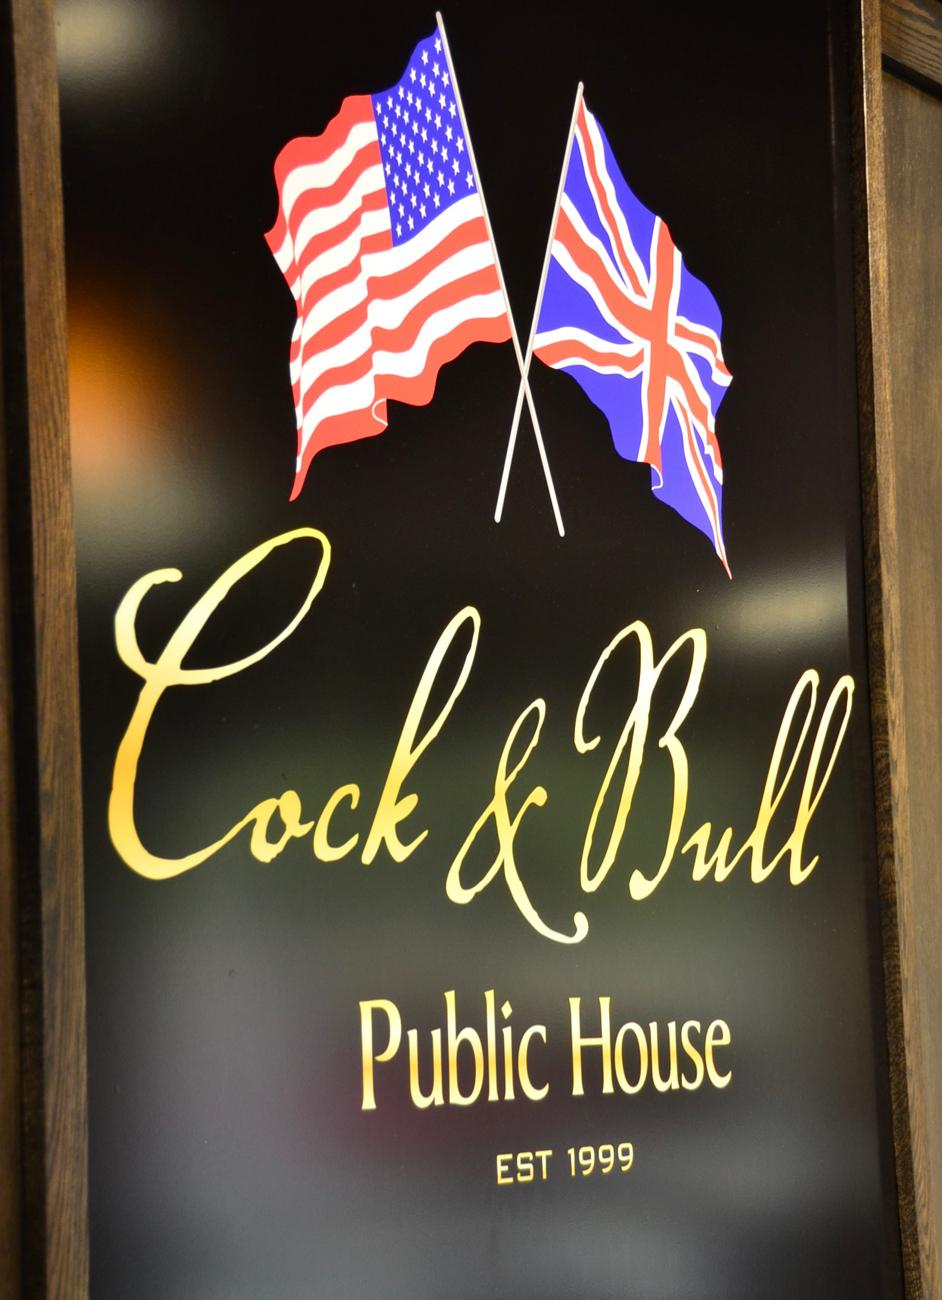 Cock and Bull has been around since 1999. There are a total of four locations (MainStrasse, Glendale, Hyde Park, and Clifton). The Short Vine location is the newest Cock and Bull, having opened in July 2017. The restaurant is best known for its impressive draft list and, of course, the fish and chips. ADDRESS: 2801 Vine Street (45219) / Image: Leah Zipperstein, Cincinnati Refined // Published: 11.1.17